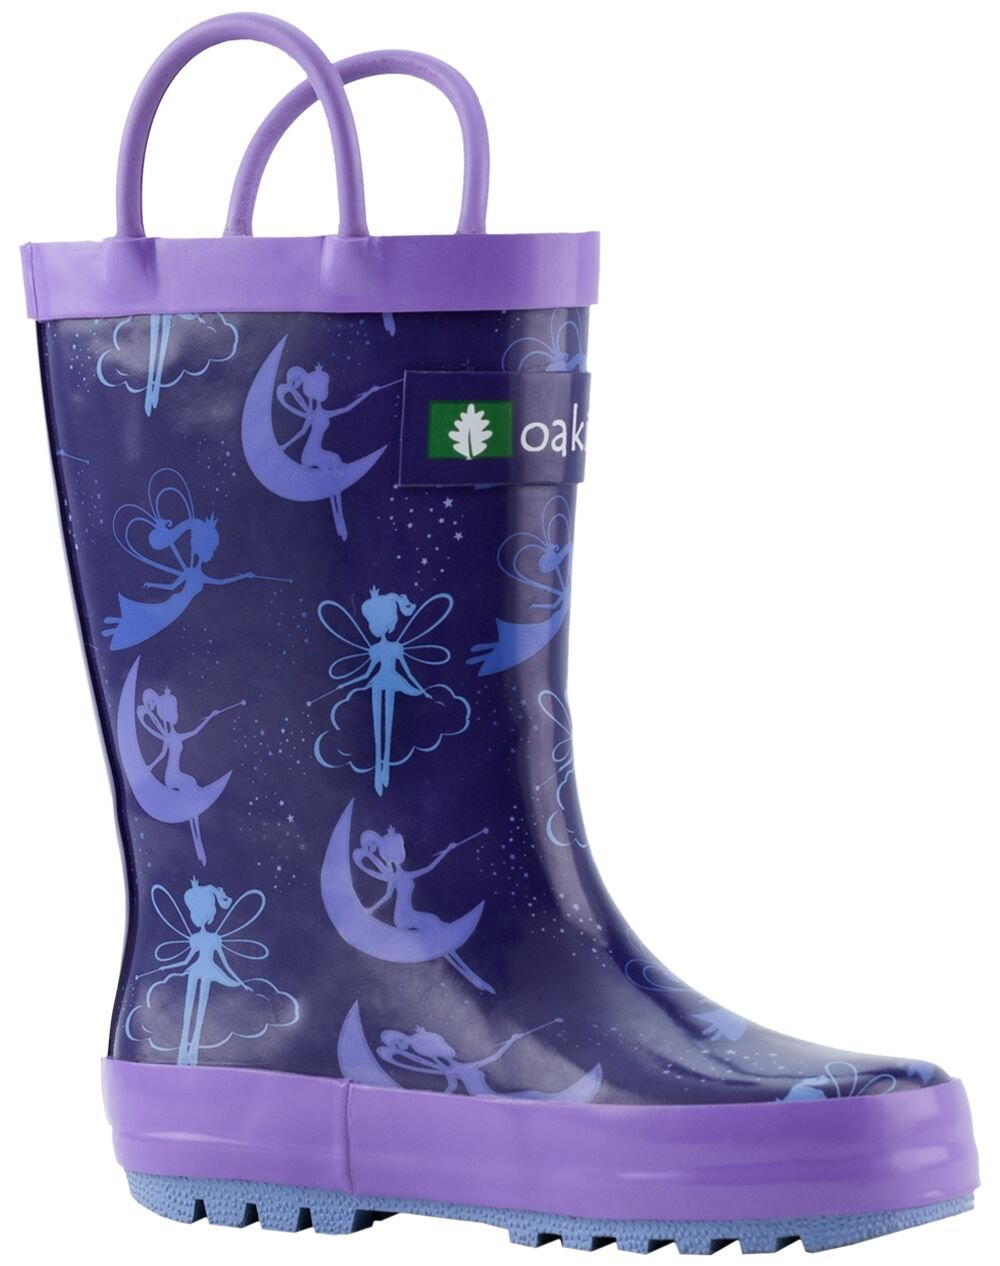 Oakiwear Kids Rubber Rain Boots with Easy-On Handles, Fairy Dust, 1Y US Little Kid